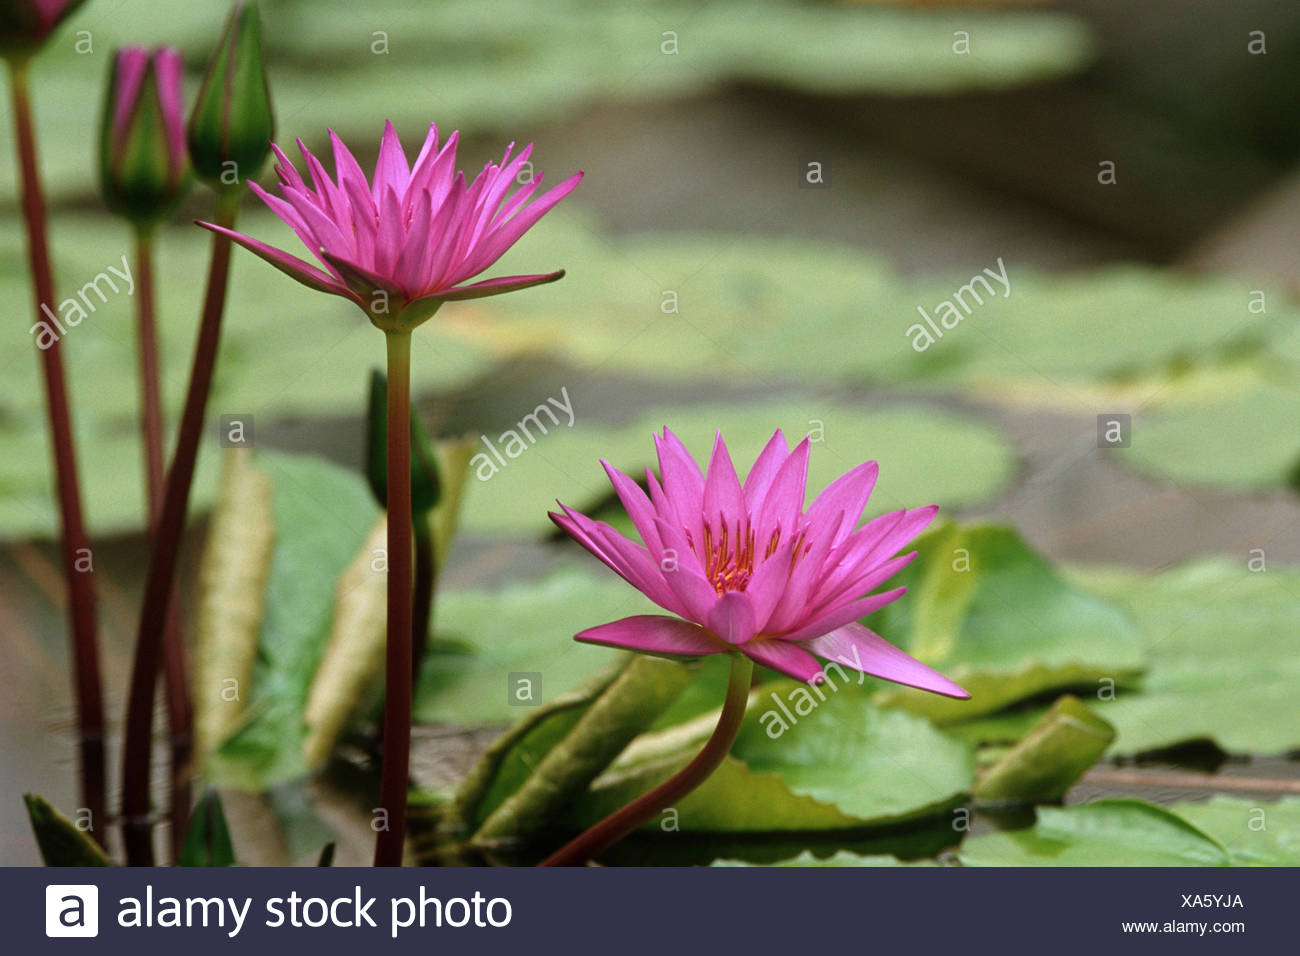 water lily, pond lily (Nymphaea 'Director George T. Moore', Nymphaea Director George T. Moore), Director George T. Moore, blooming - Stock Image